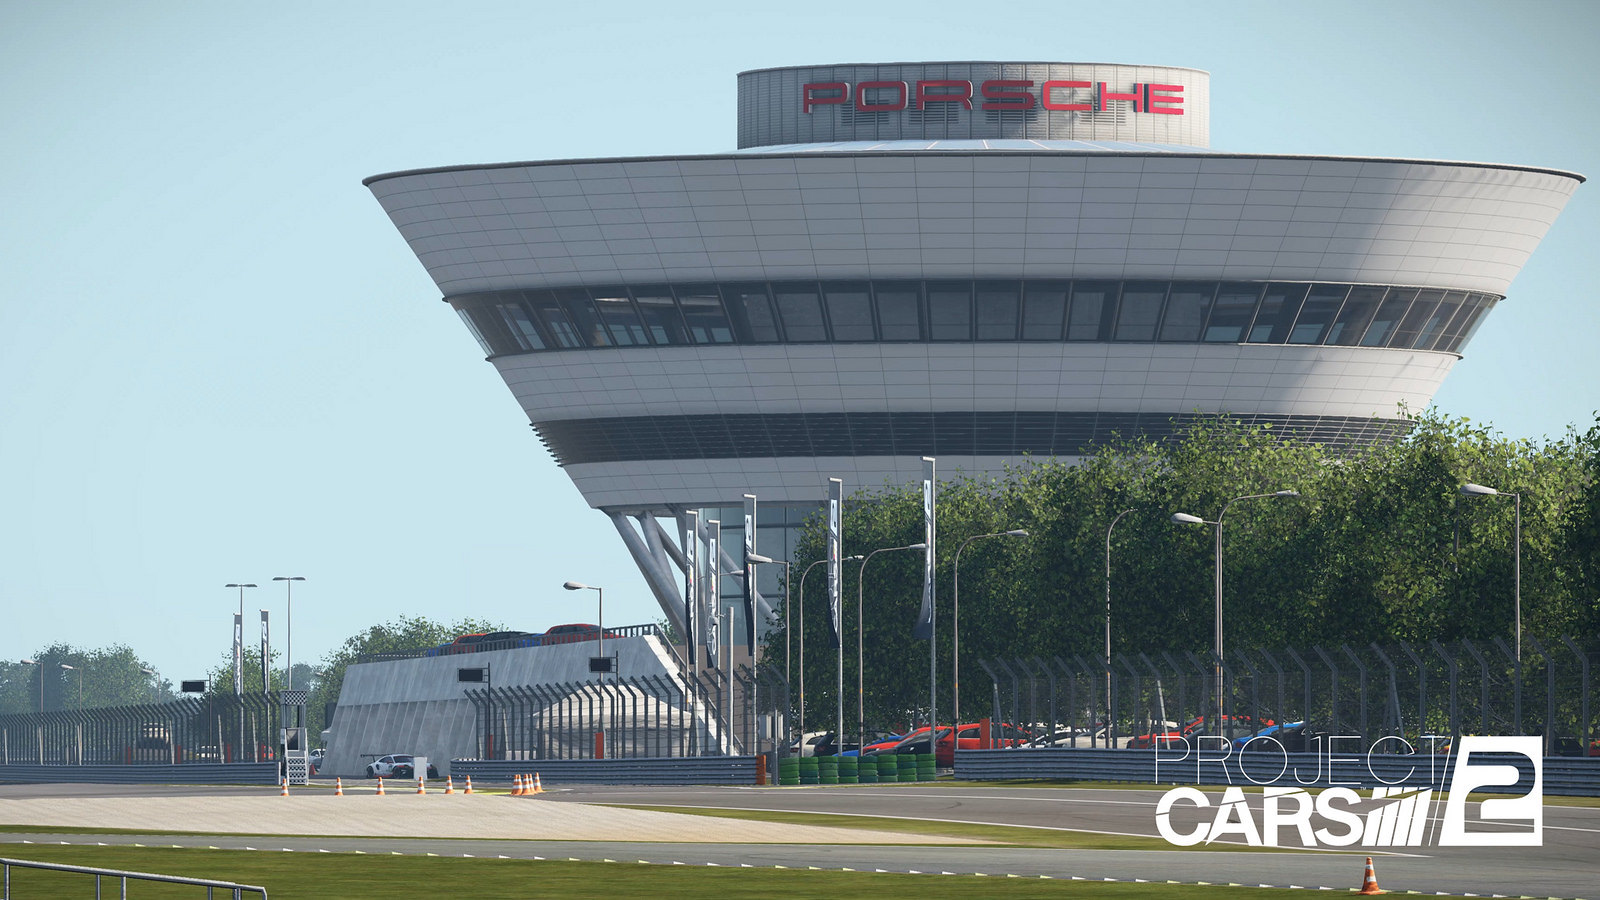 Project-CARS-2-Porsche-on-road-circuit-test-track-Leipzig-preview